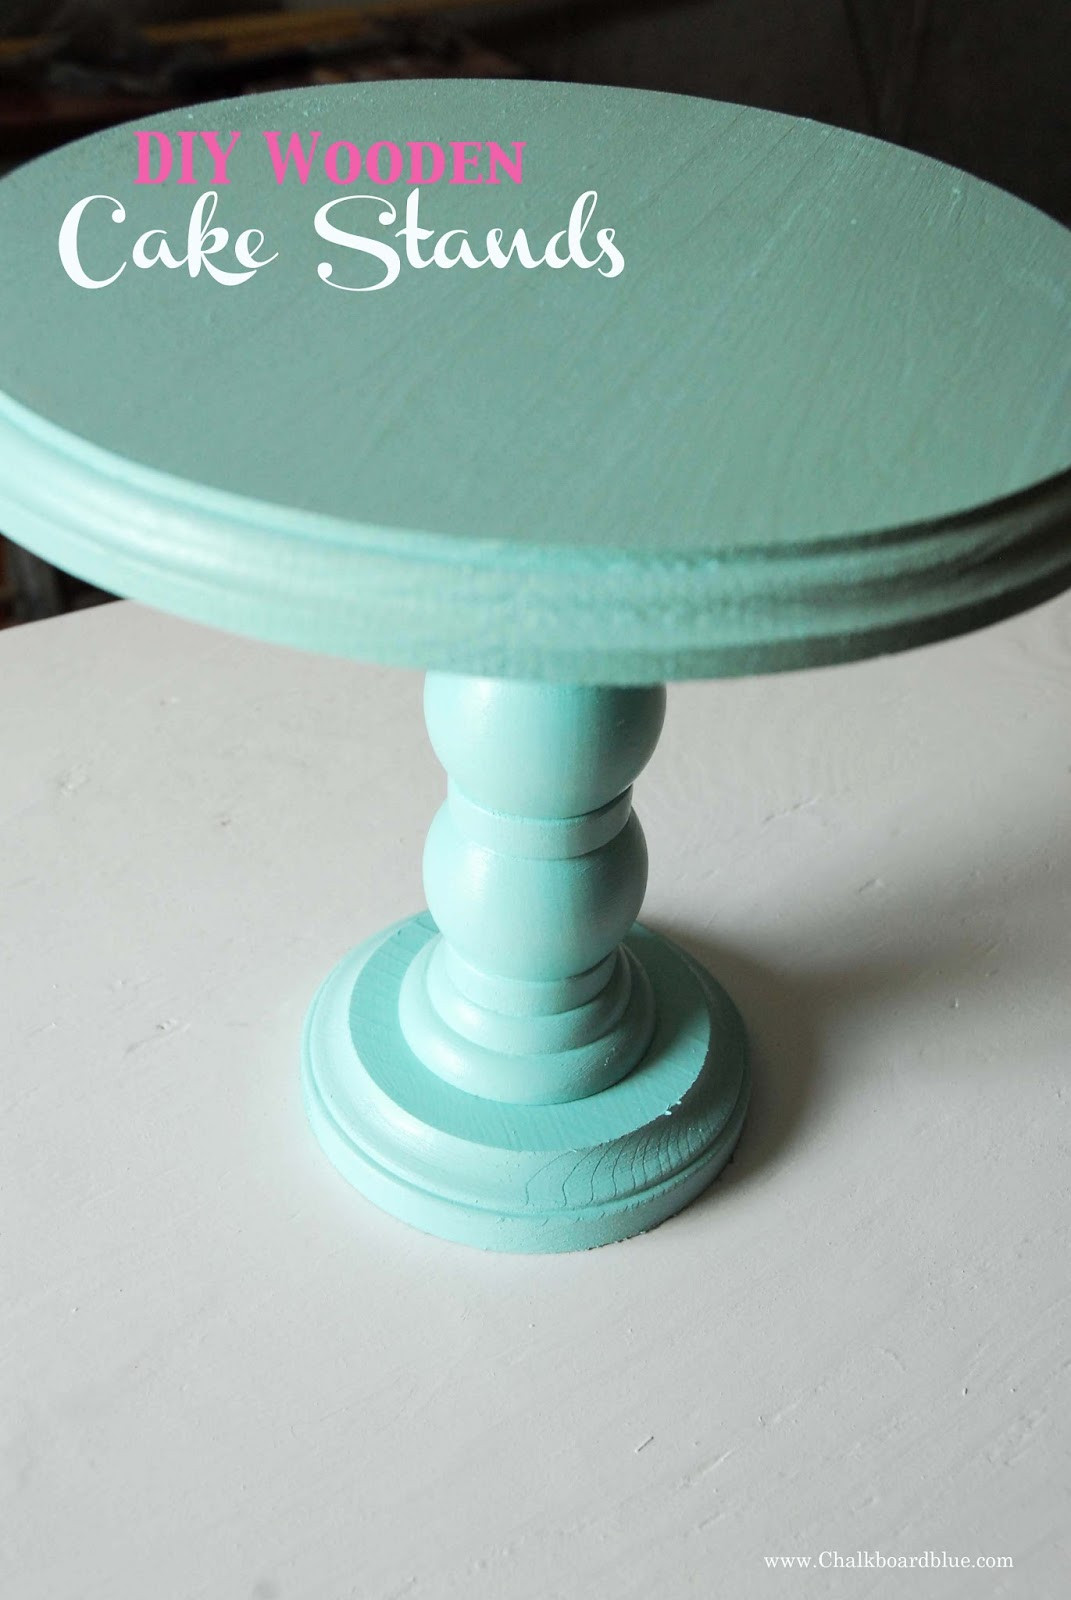 Best ideas about DIY Wood Cake Stand . Save or Pin Chalkboard Blue DIY Wooden Cake Stands Now.